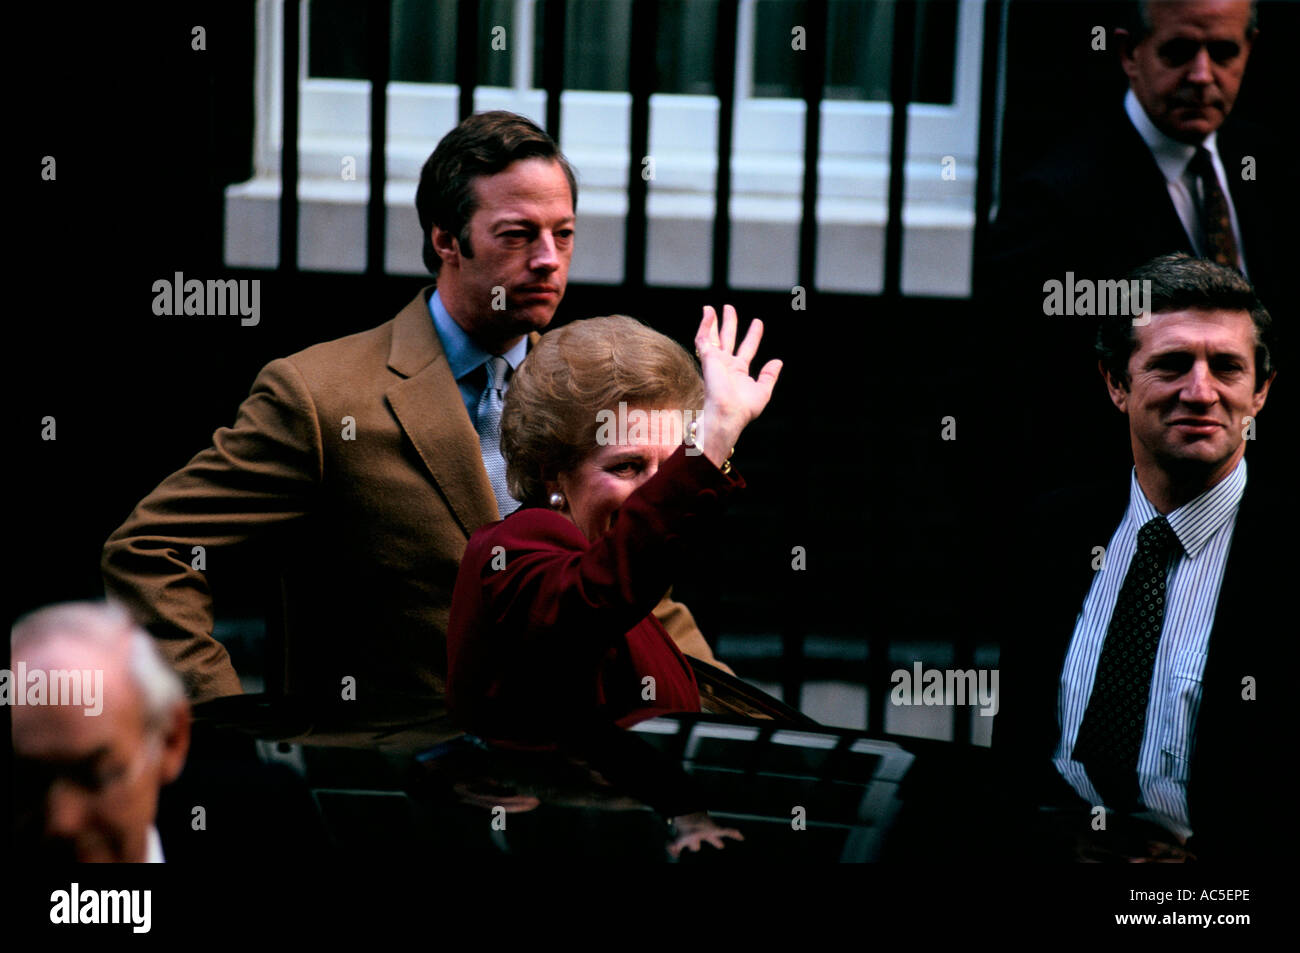 MARGARET THATCHER ON HER LAST DAY AT DOWNING STREET NOVEMBER 28 1990 - Stock Image